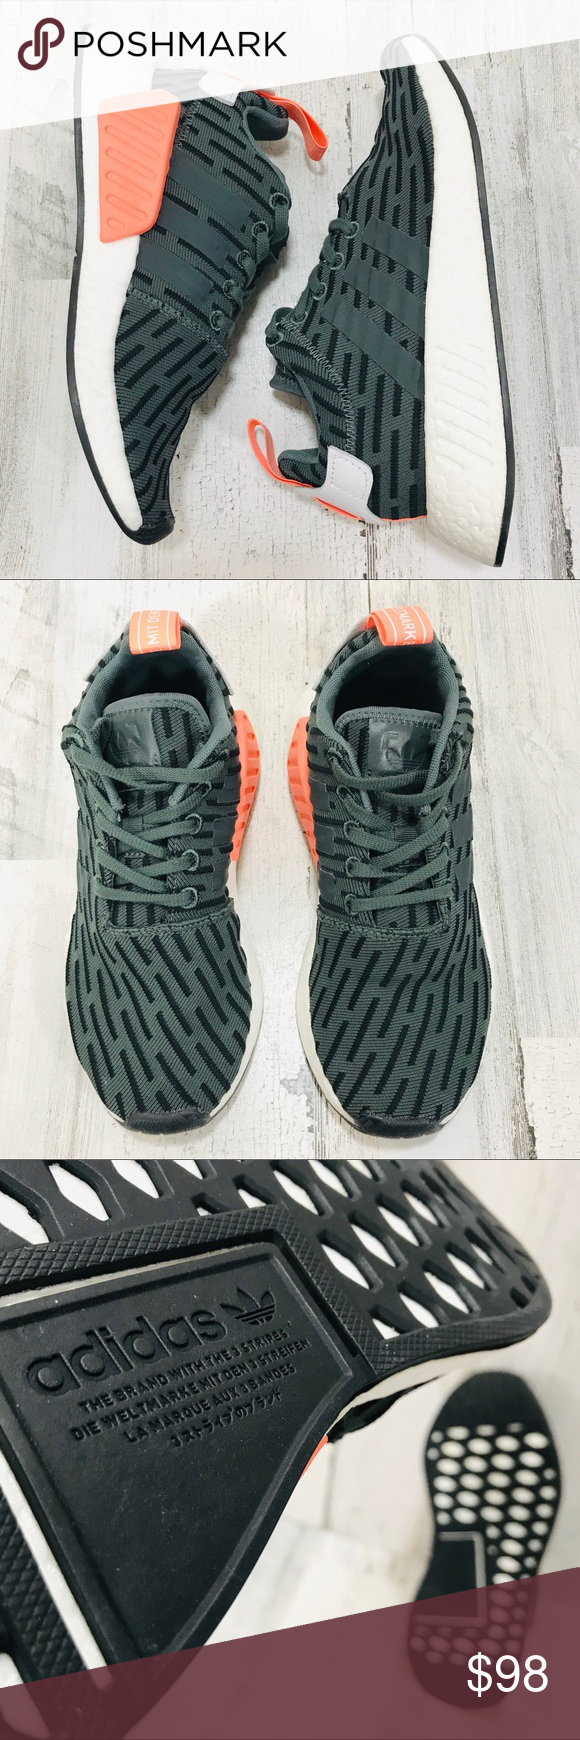 info for 9467c 1f26b Adidas NMD R2 BY9314 Utility Ivy Green Art# BA7259 These are ...